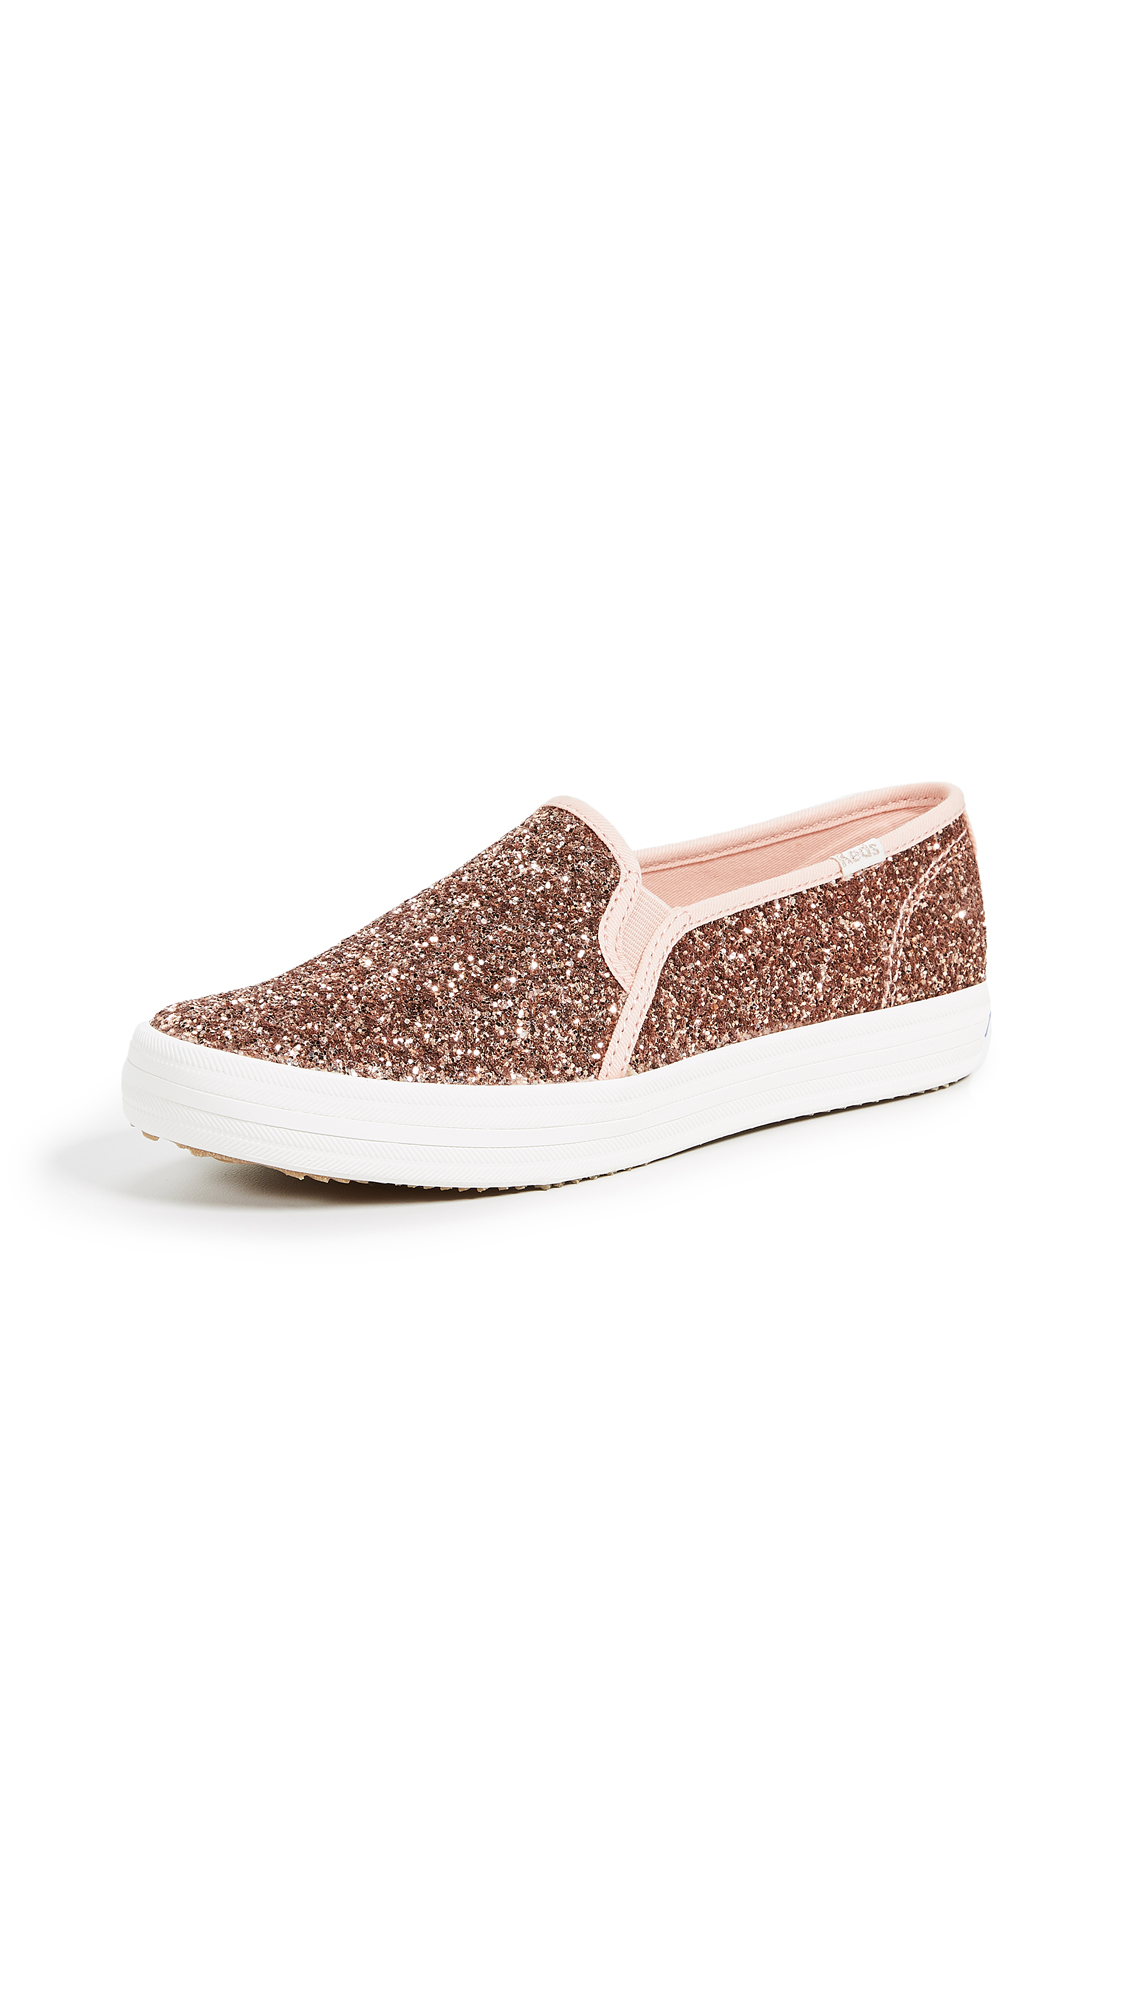 Keds x Kate Spade New York Double Decker Slip On Sneakers - Rose Pink